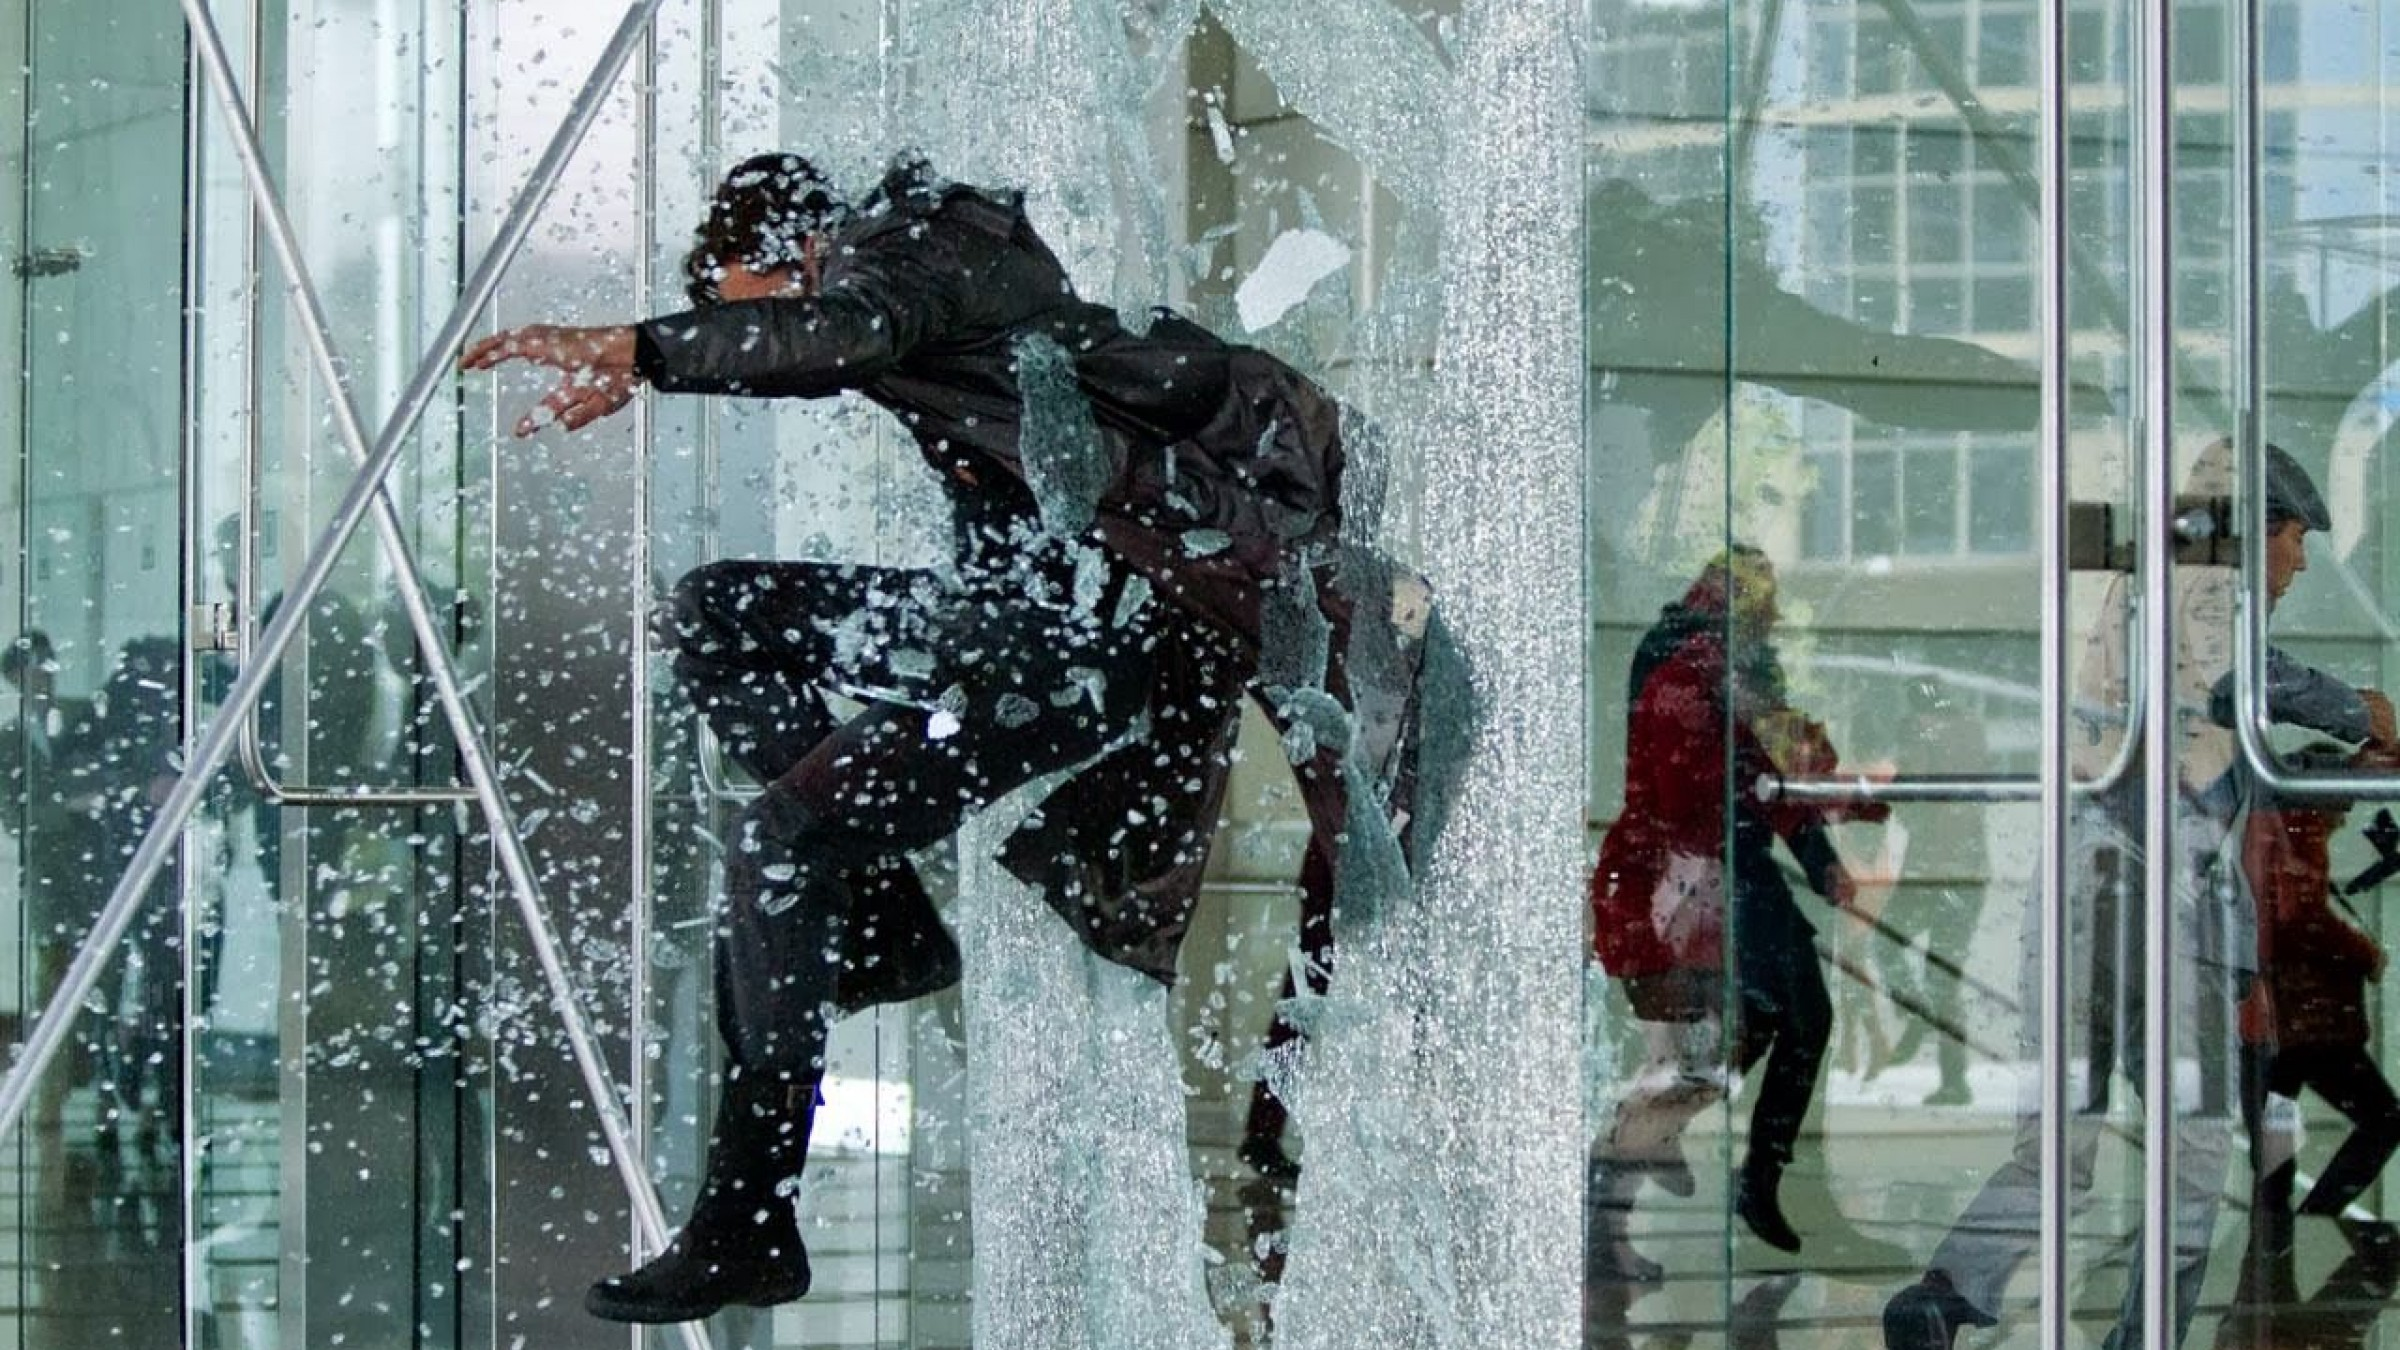 Stunt Movie Toughened Glass jumping through glass